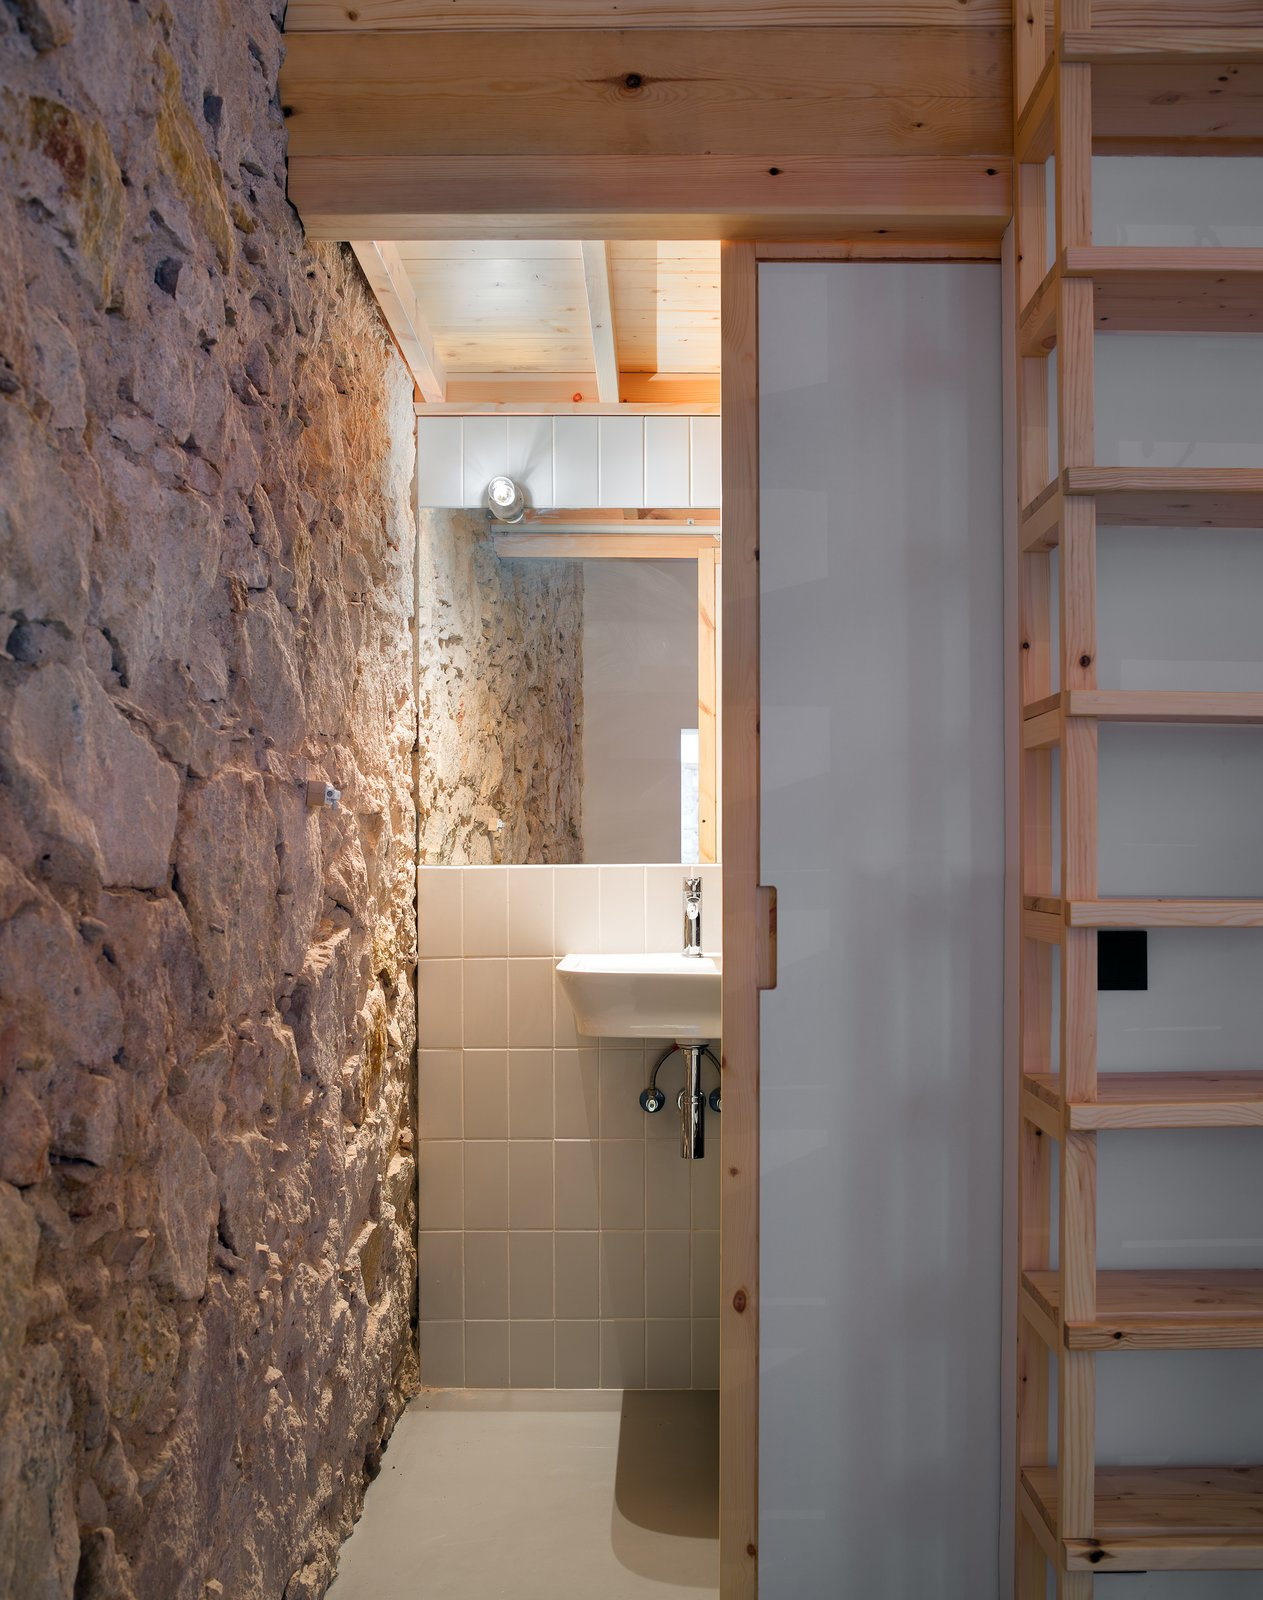 Bath Room, Wall Mount Sink, Accent Lighting, and Stone Slab Wall  Can Ghalili by LoCa Studio